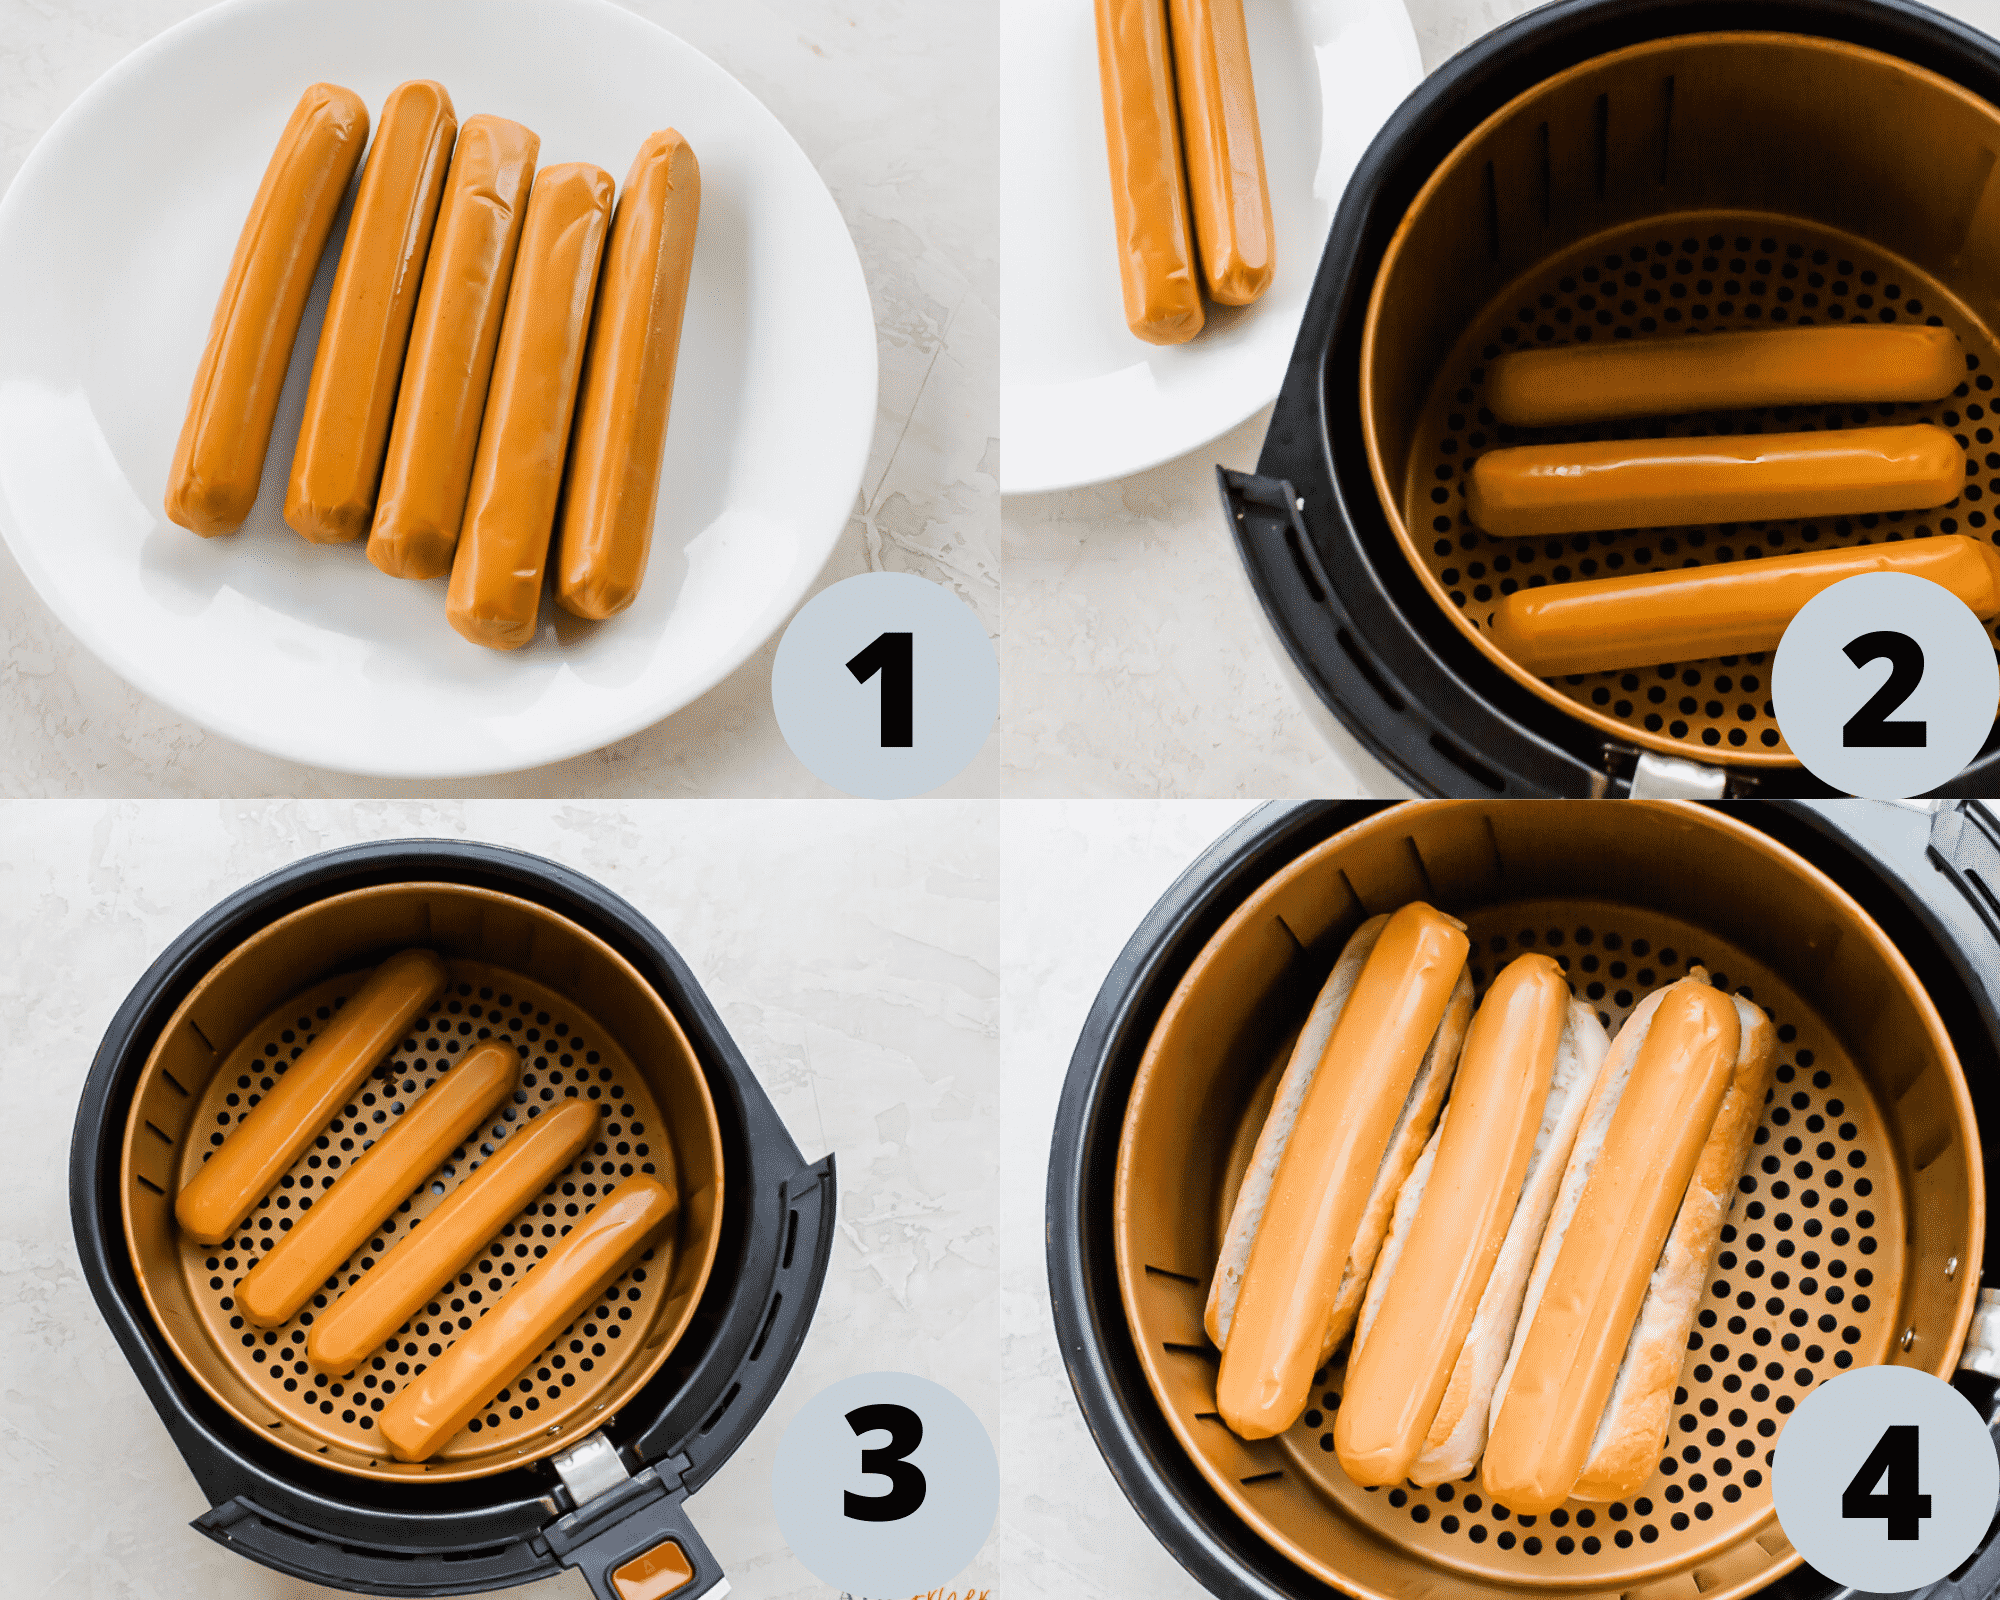 4 pictures showing step by step directions on how to make air fryer hotdogs